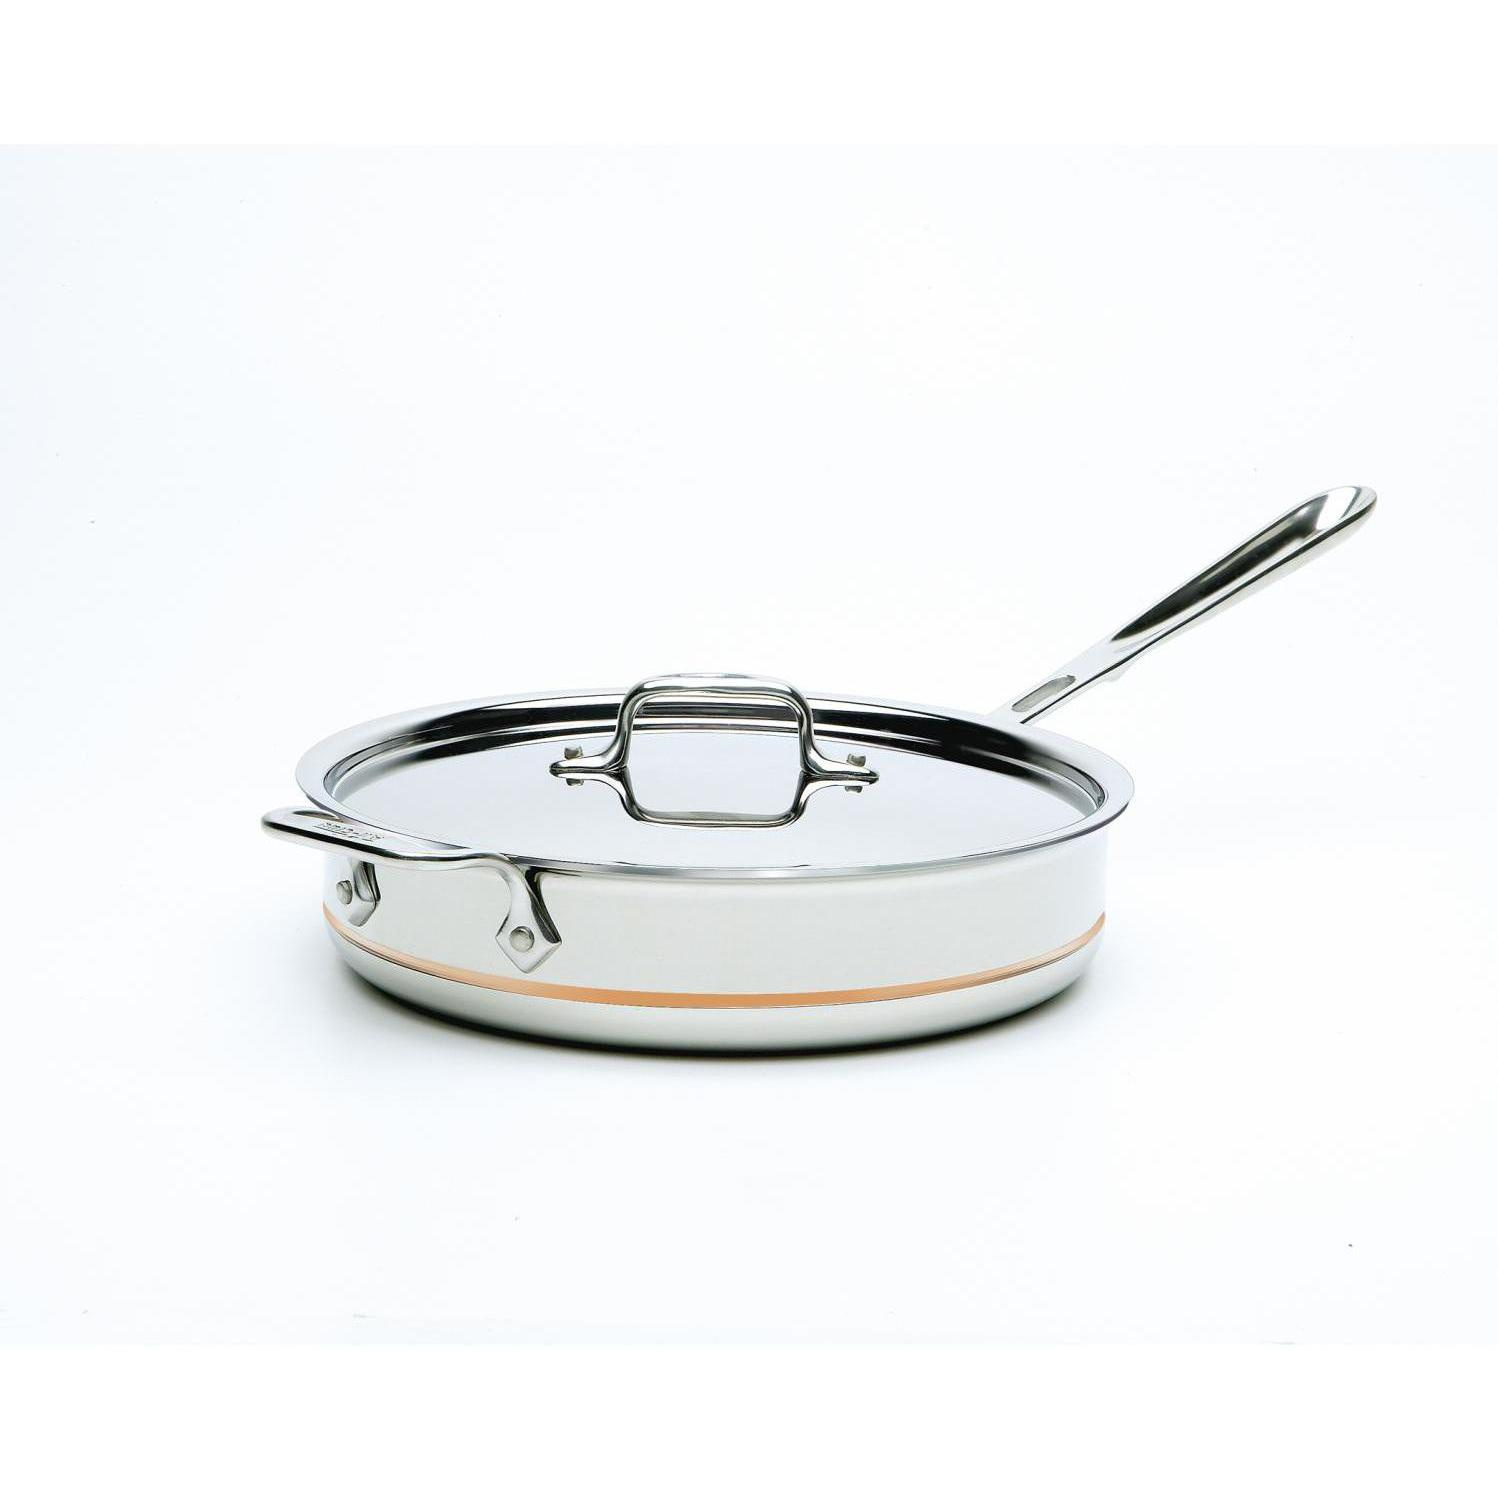 Picture of All-Clad Copper-Core 3-Quart Saute Pan With Lid